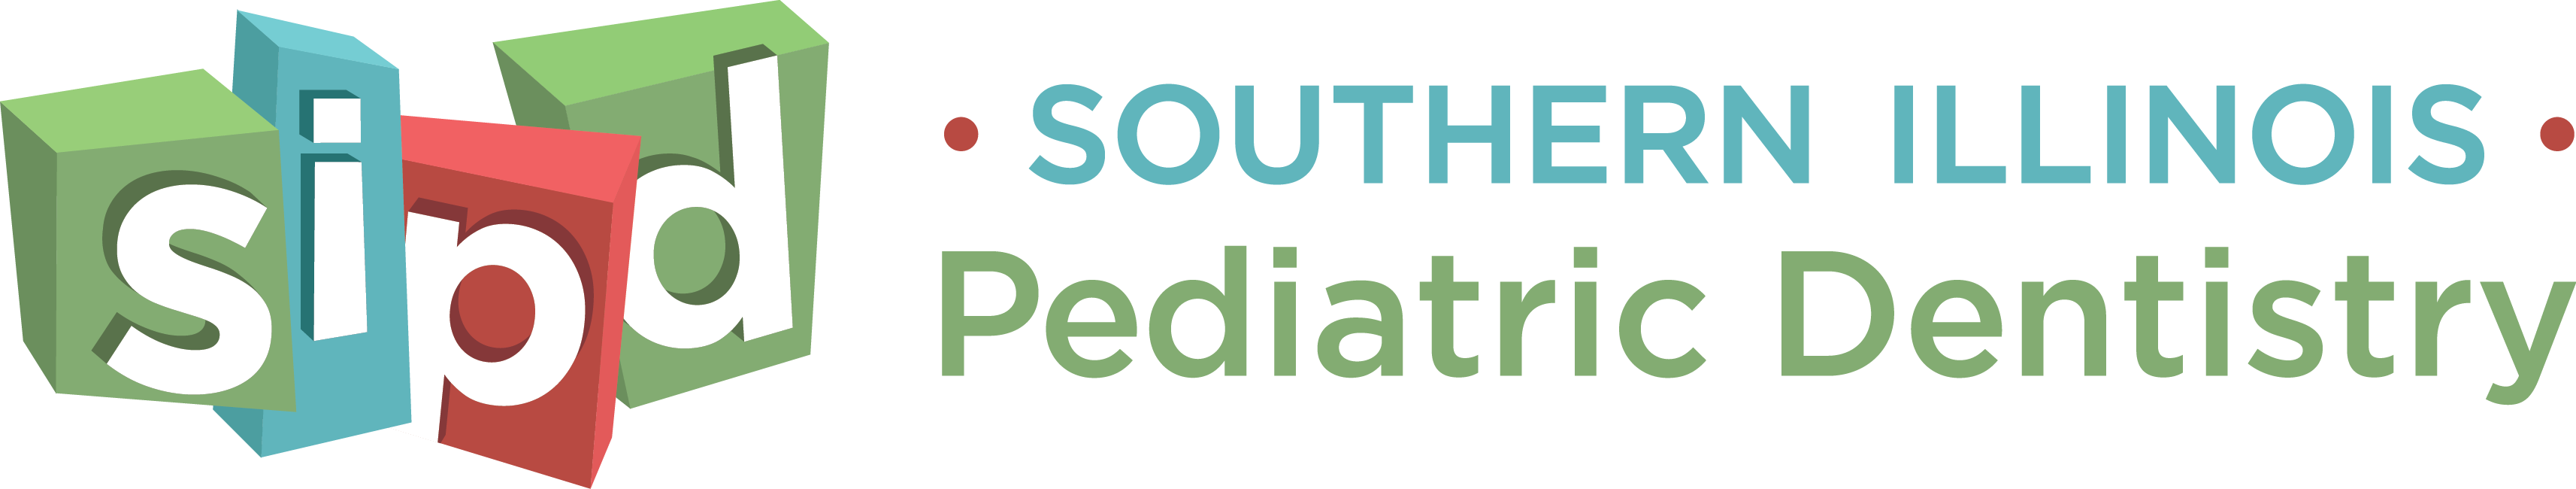 Southern Illinois Pediatric Dentistry